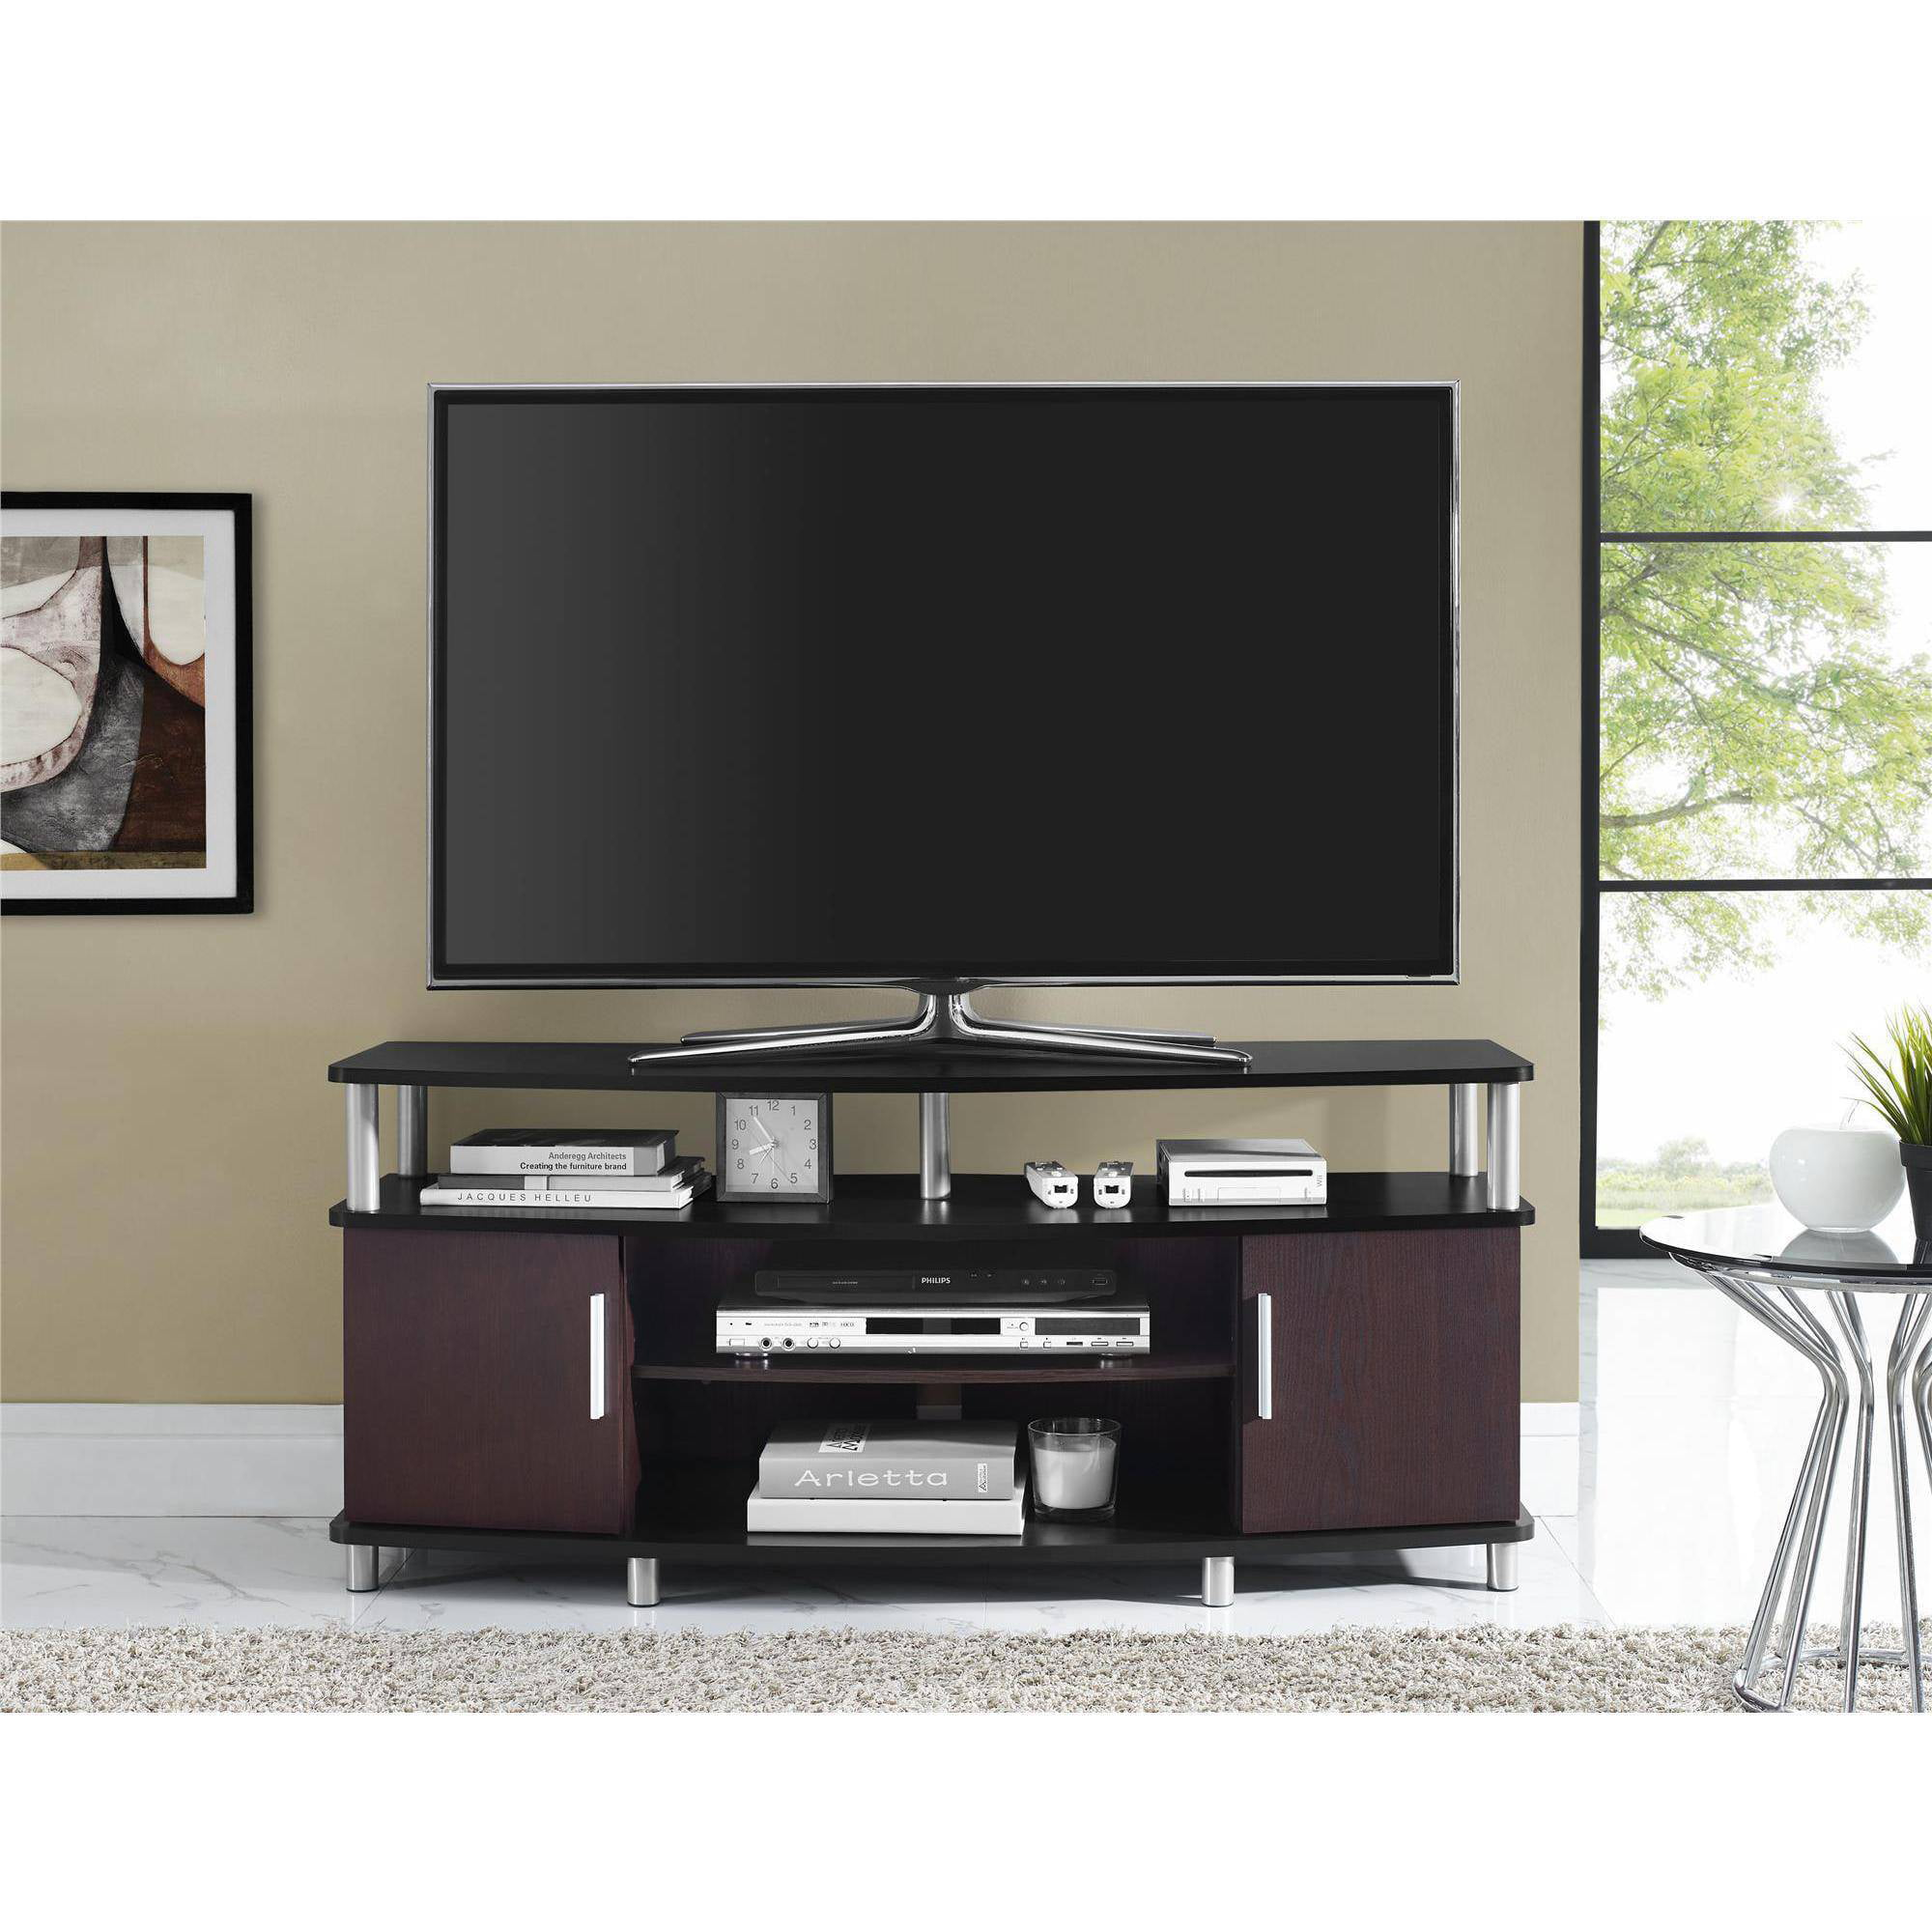 Living Room Entertainment Carson Tv Stand For Tvs Up To 50 Multiple Finishes Walmartcom